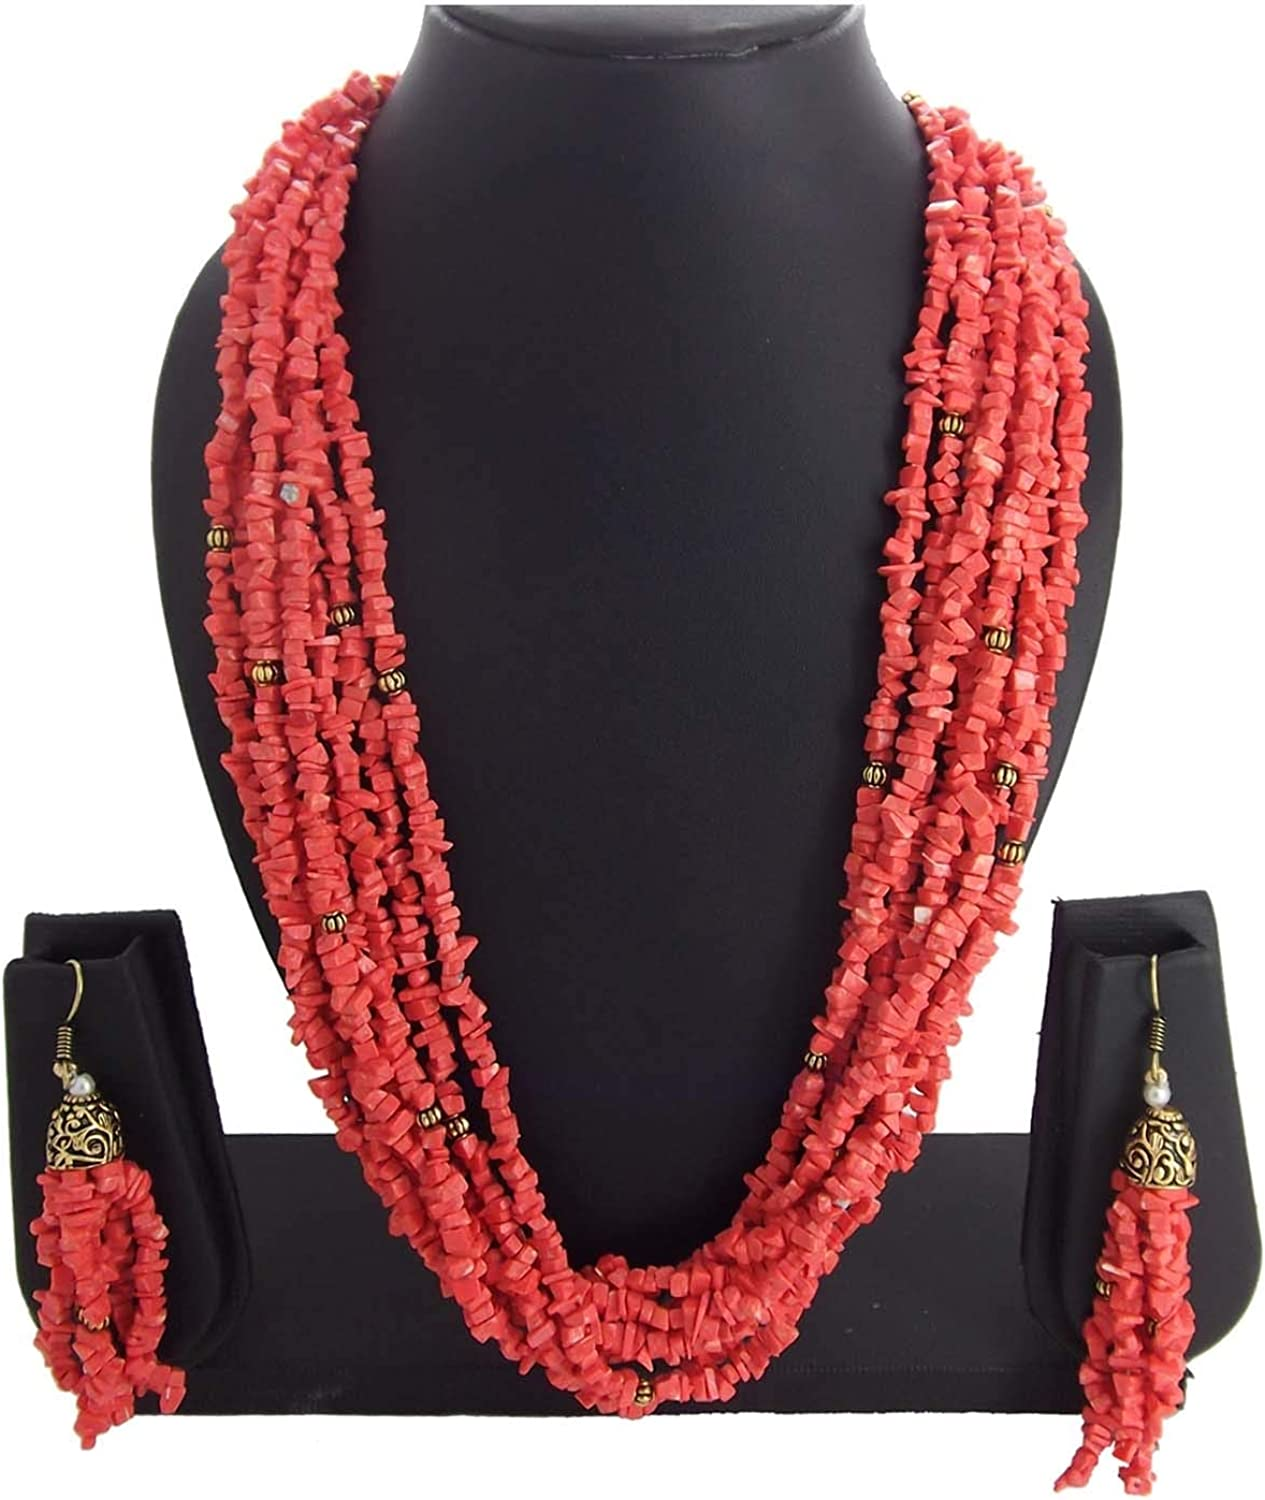 Areum 9blings Womens Christmas Collection Multistrand Coral Gold Plated Necklace Set